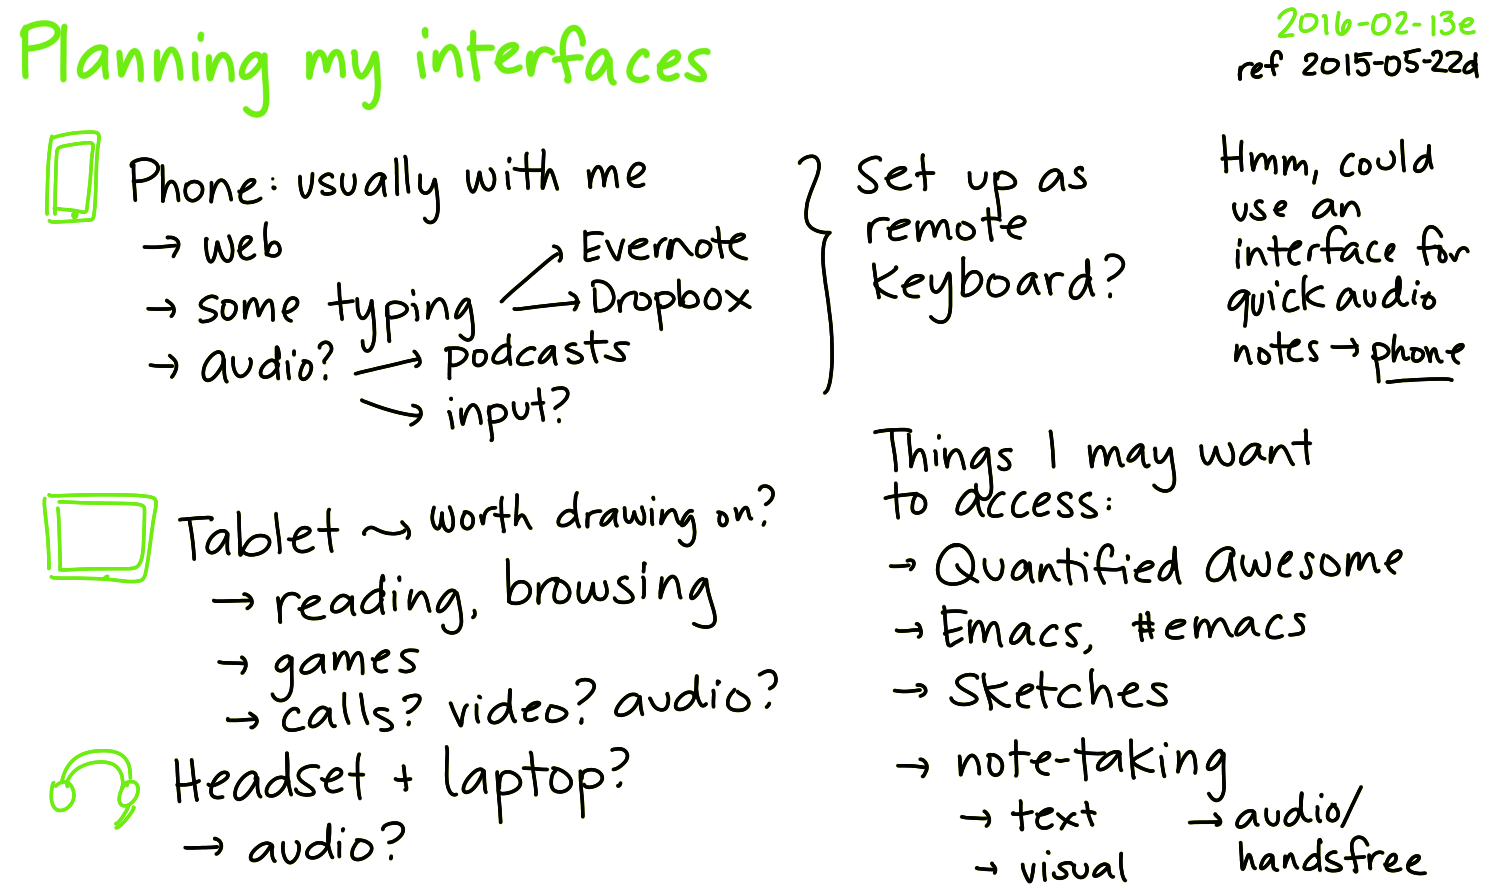 2016-02-13e Planning my interfaces -- index card #design #devices #mobile ref 2015-05-22d.png